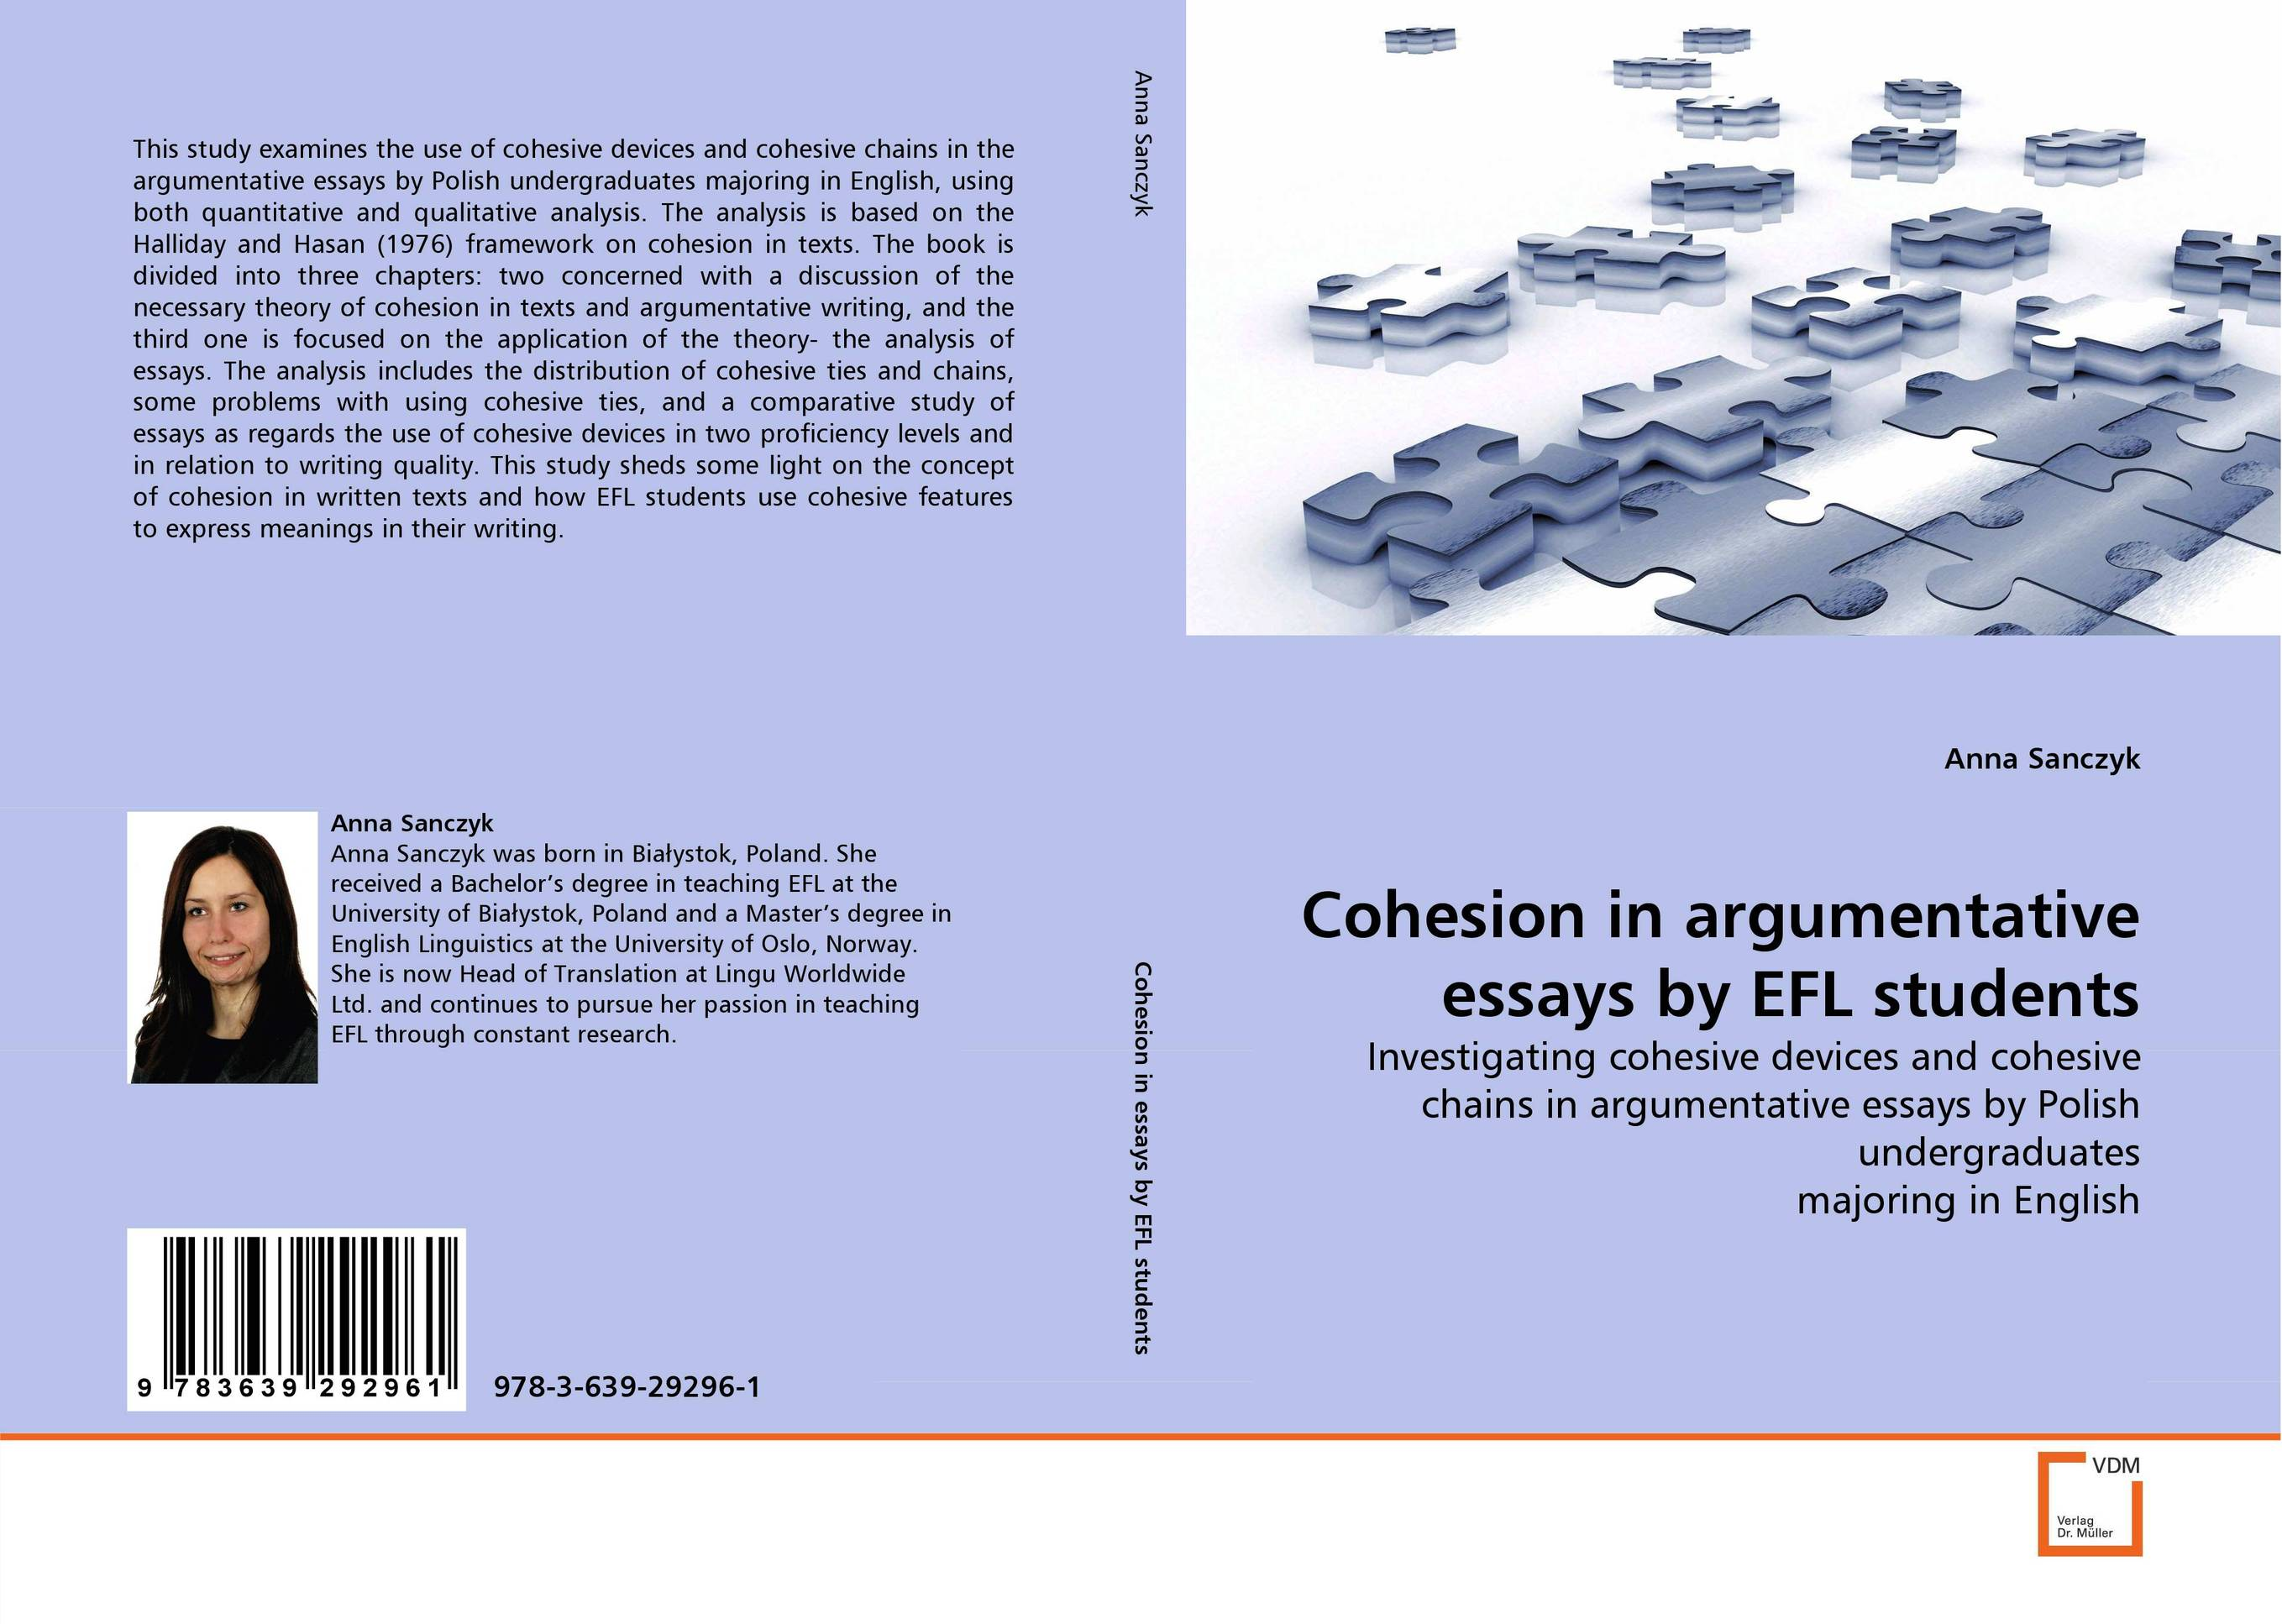 Cohesion in argumentative essays by EFL students